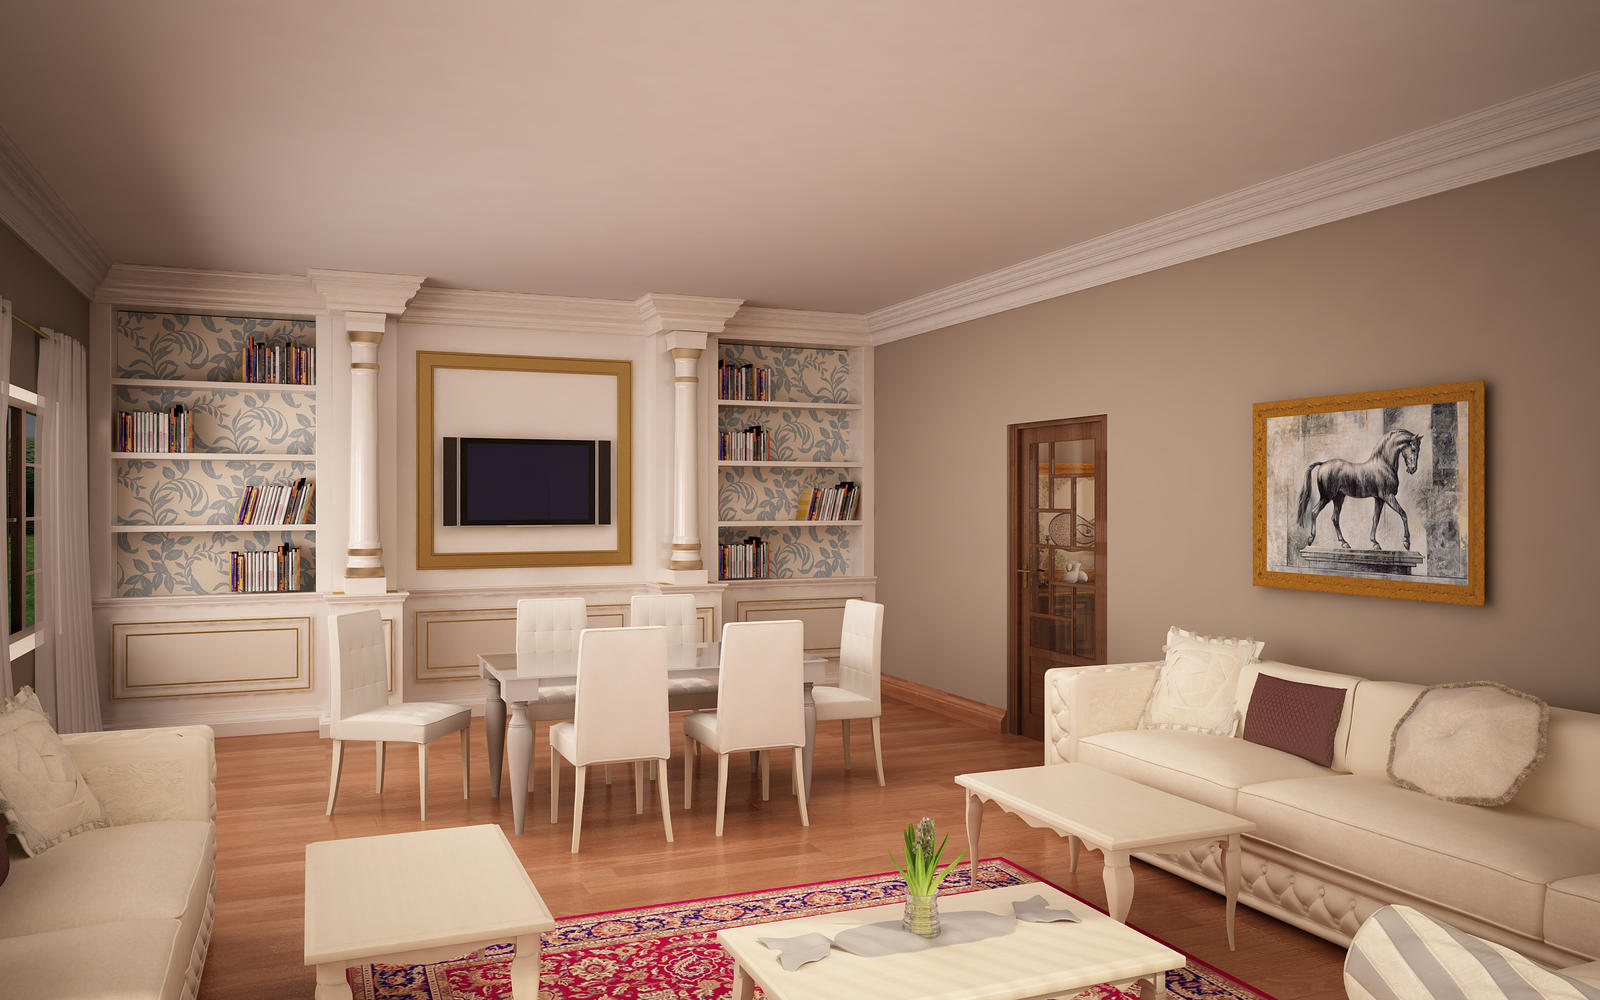 classic living room 07 by murataral on deviantart